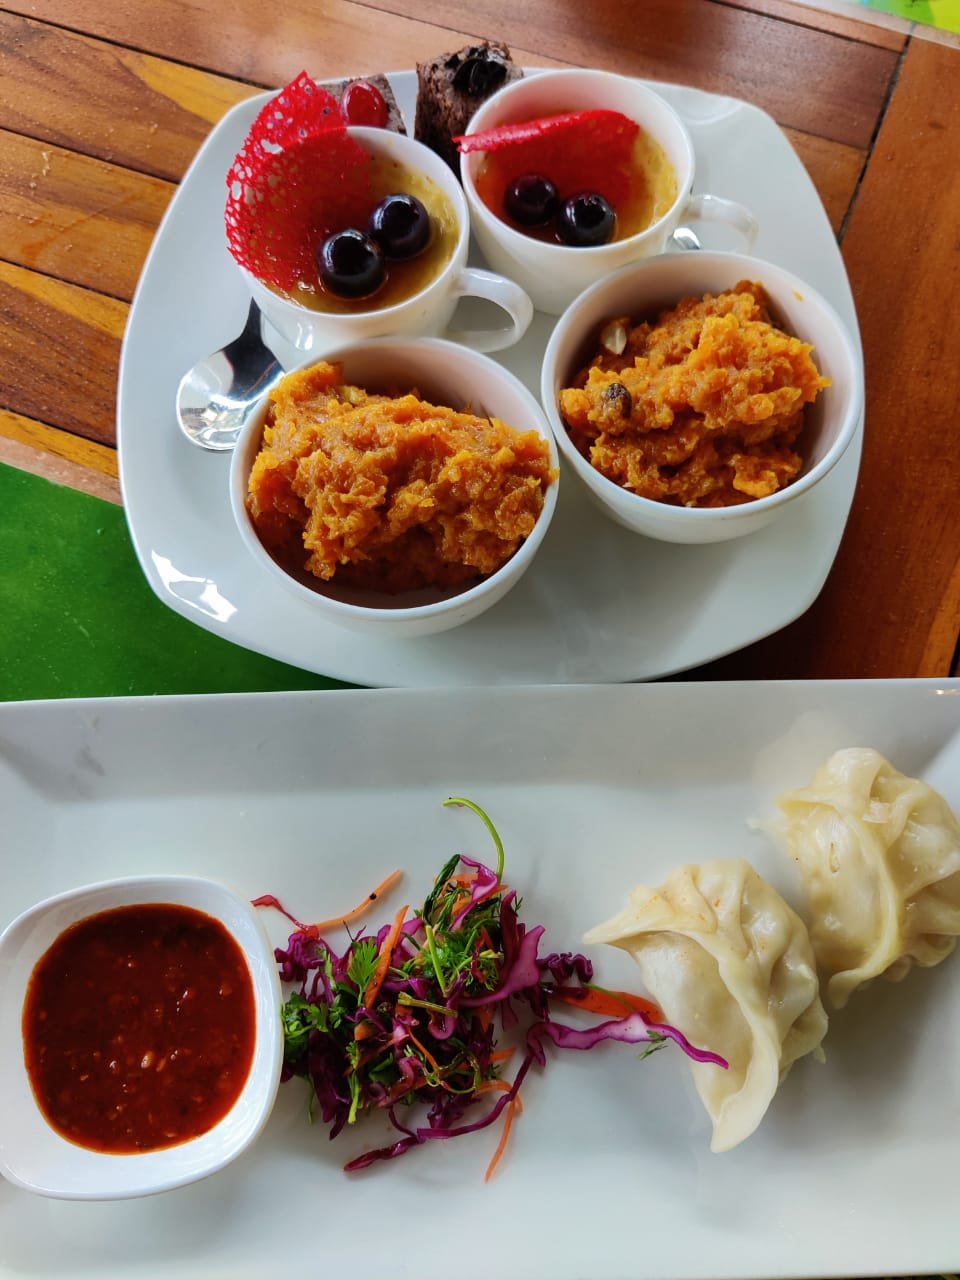 Yummy dishes in the restaurant